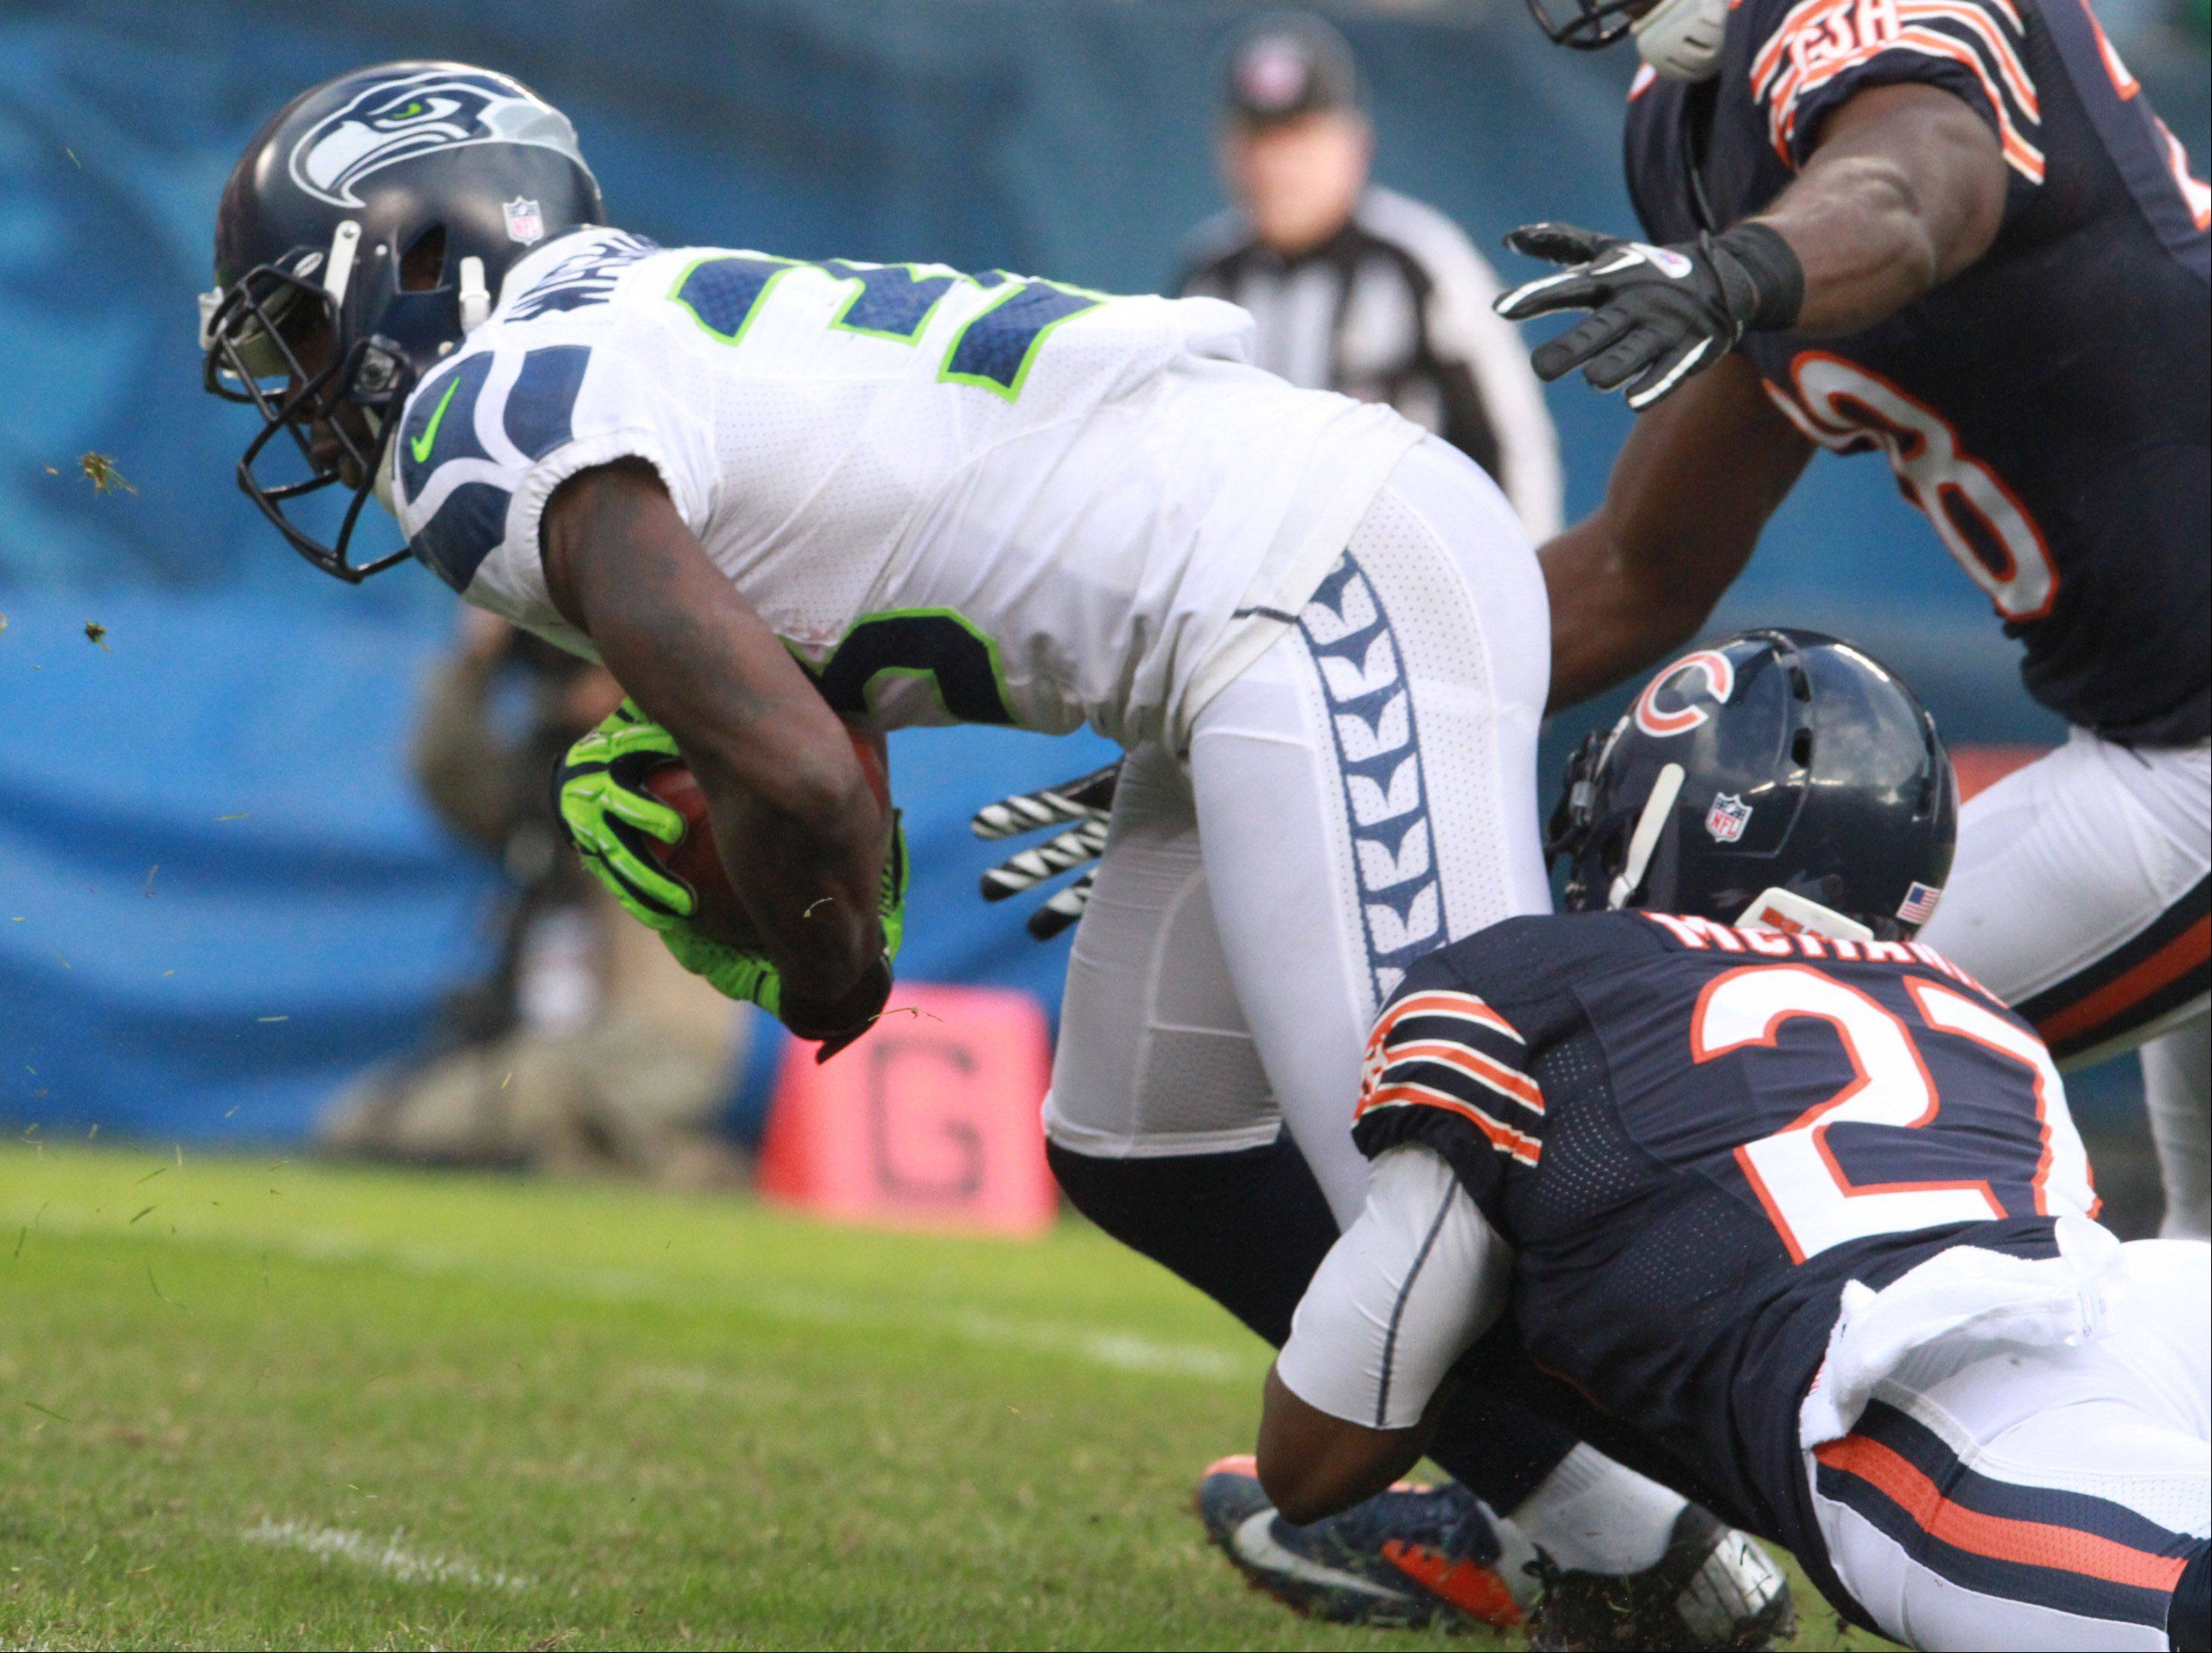 Seattle Seahawks running back Leon Washington is tripped up by Chicago Bears defensive back Sherrick McManis at Soldier Field on Sunday.